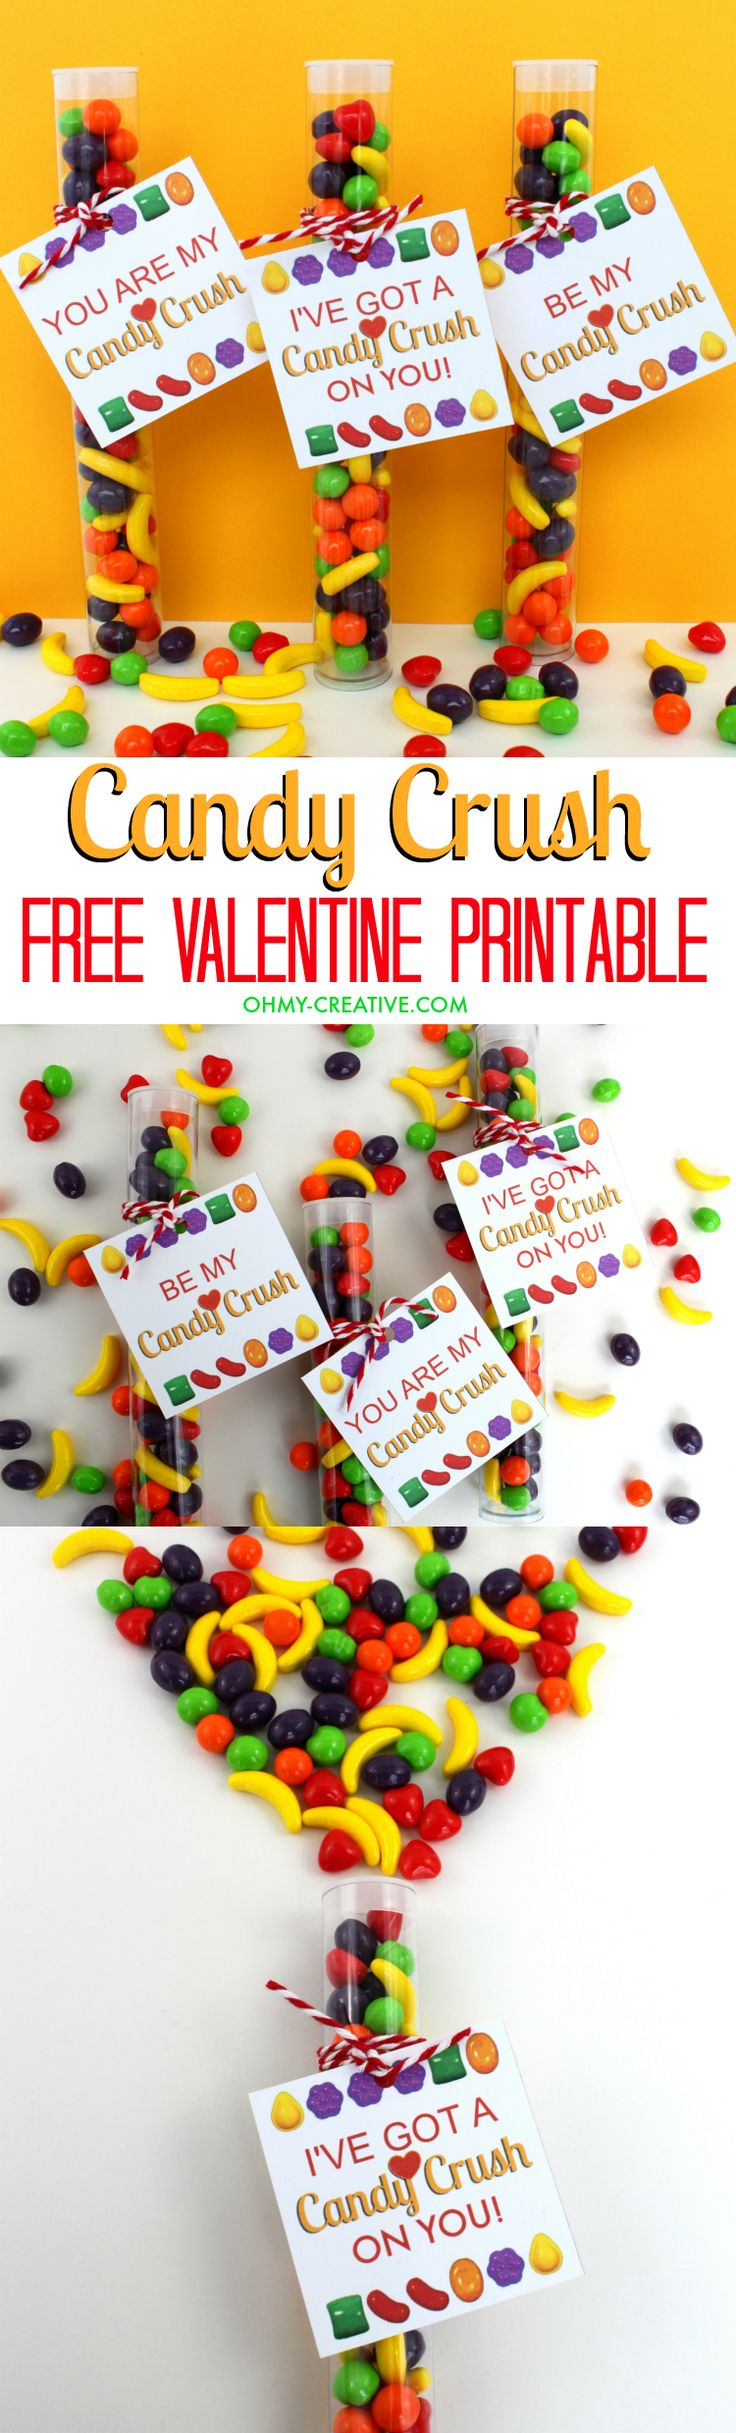 Perfect for your Candy Crush Valentine! A Free Printable Candy Crush Valentine's Day Gift Tag | OHMY-CREATIVE.COM